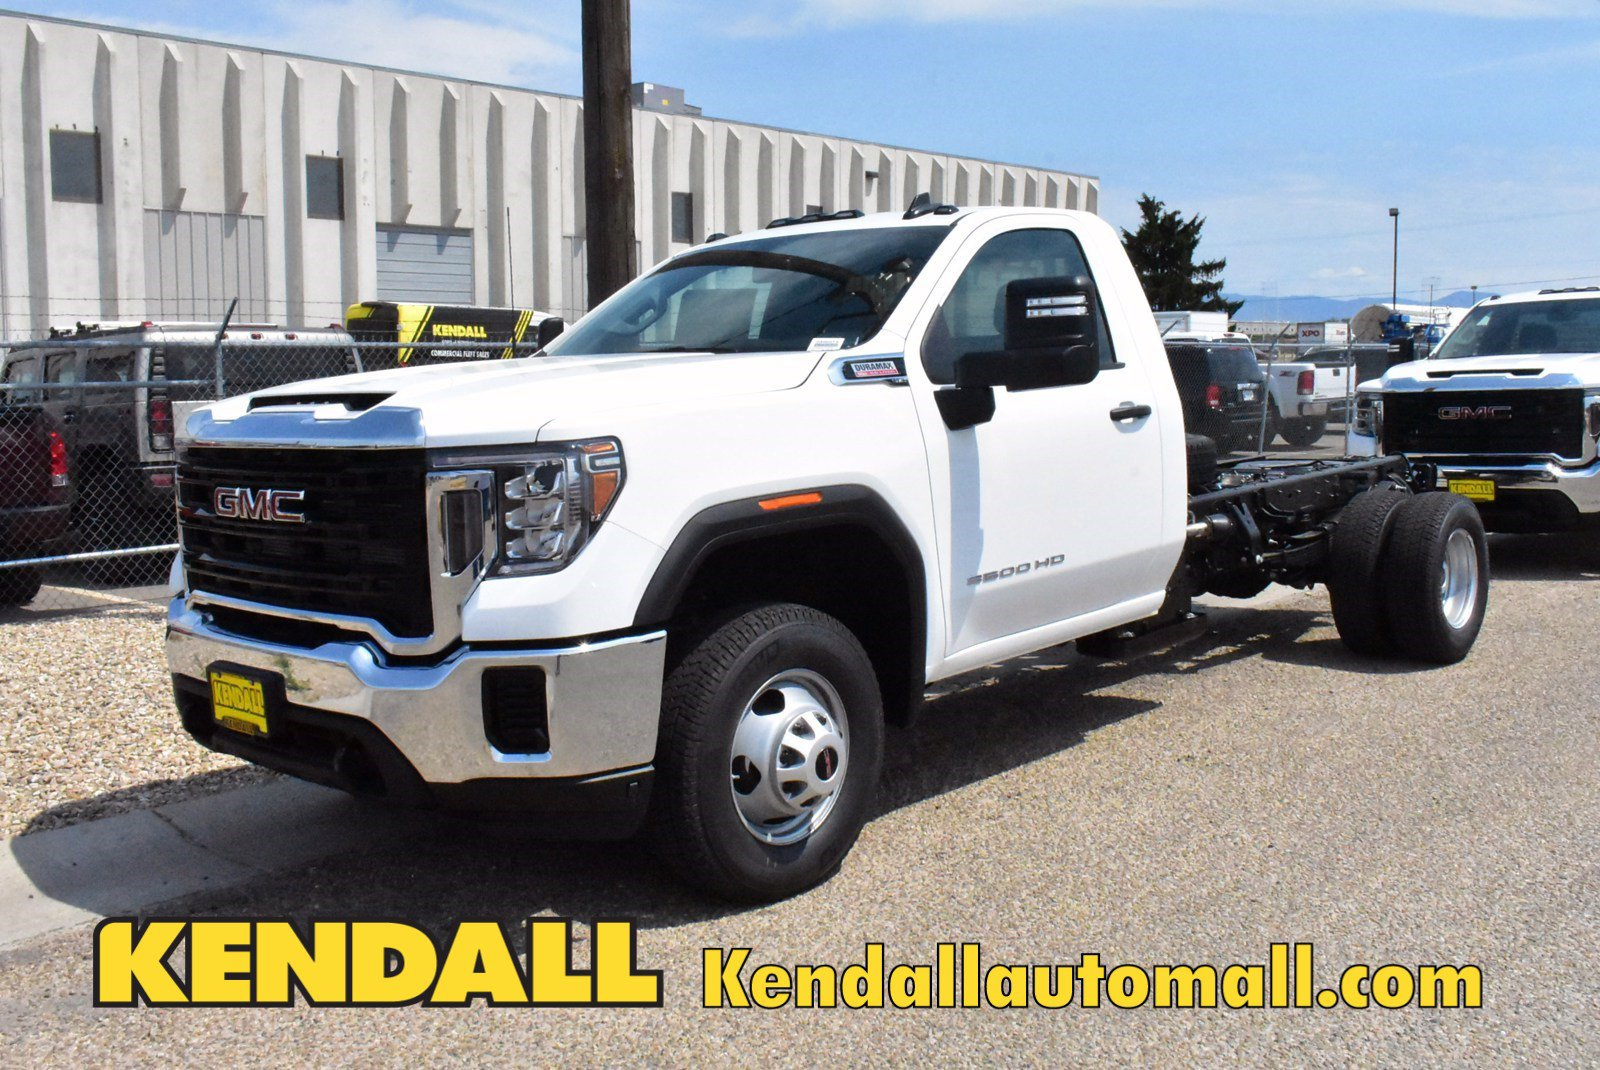 new 2020 gmc sierra 3500hd cc 4wd in nampa d400273 kendall at the idaho center auto mall kendall auto mall